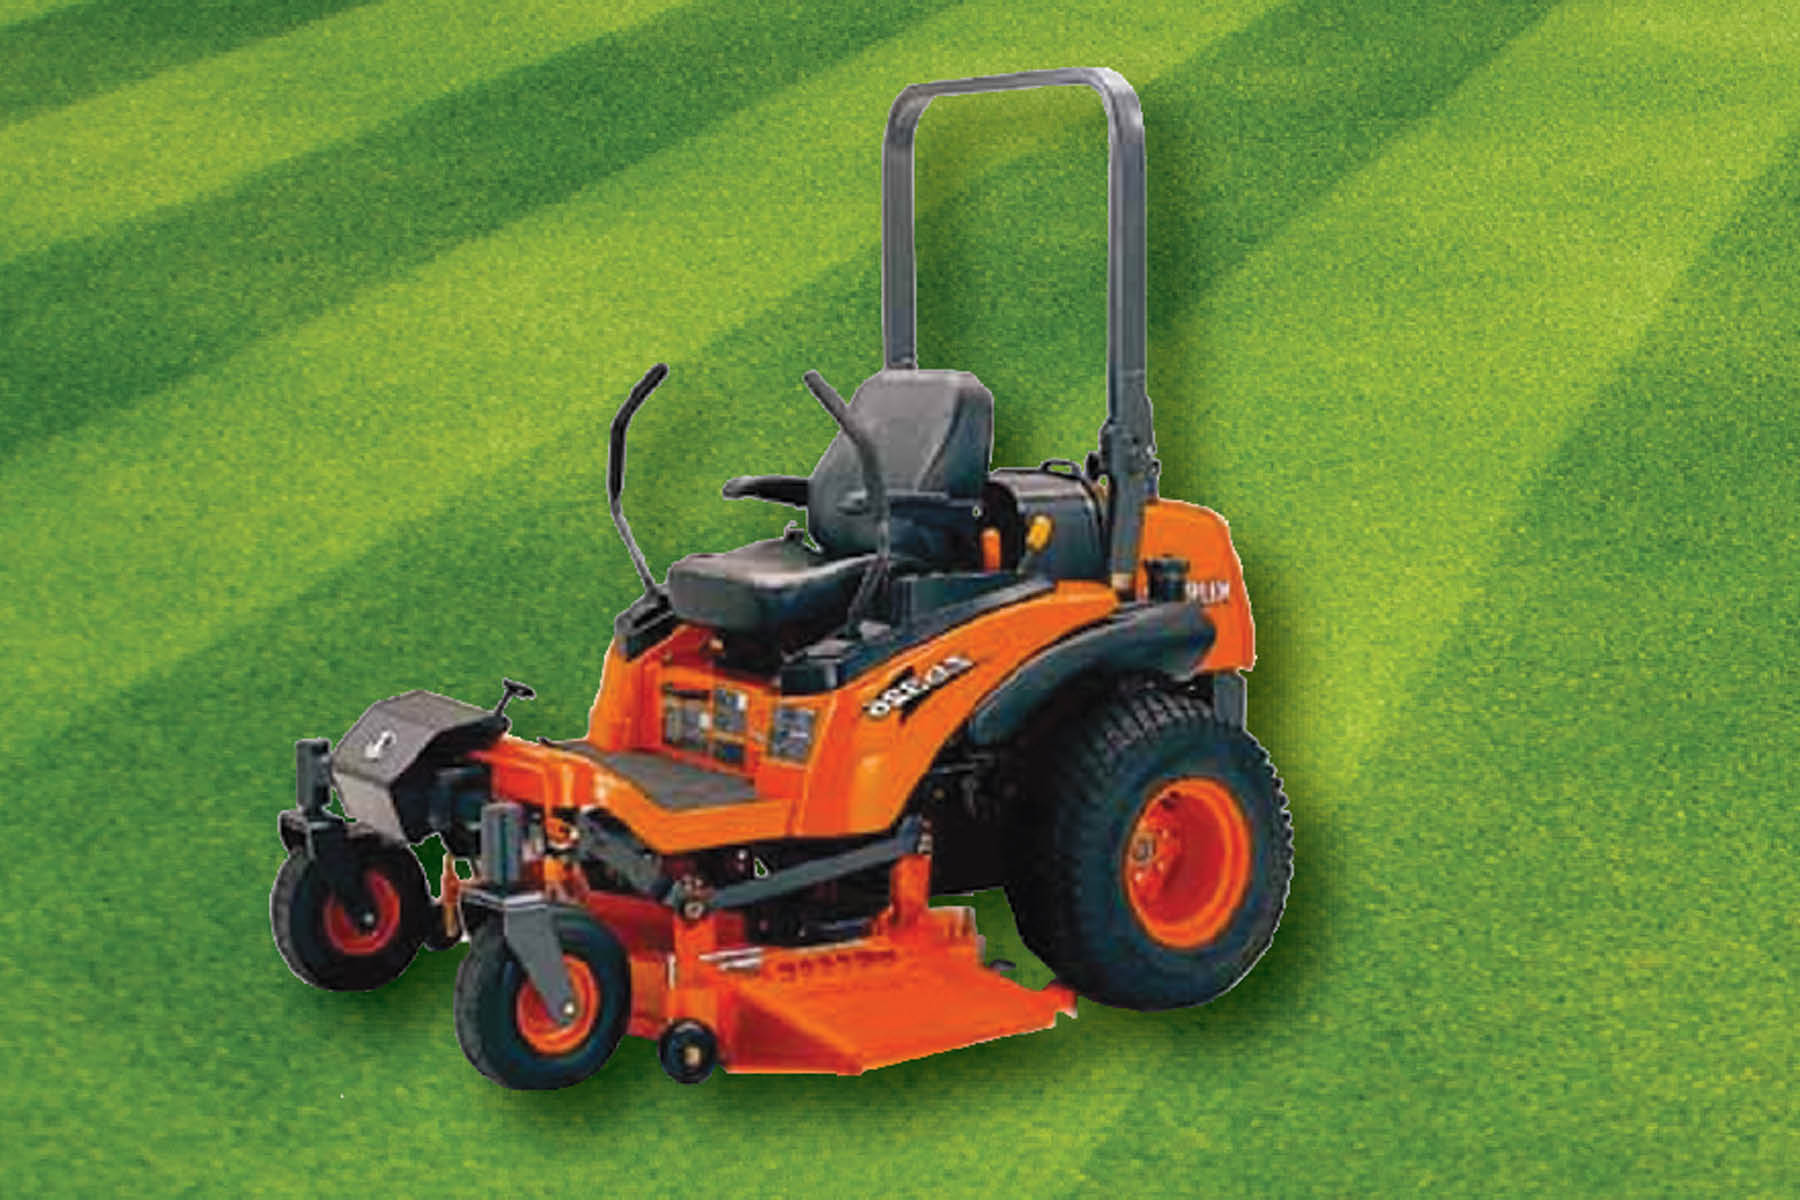 mowers, landscaping, tools, rental, lawn